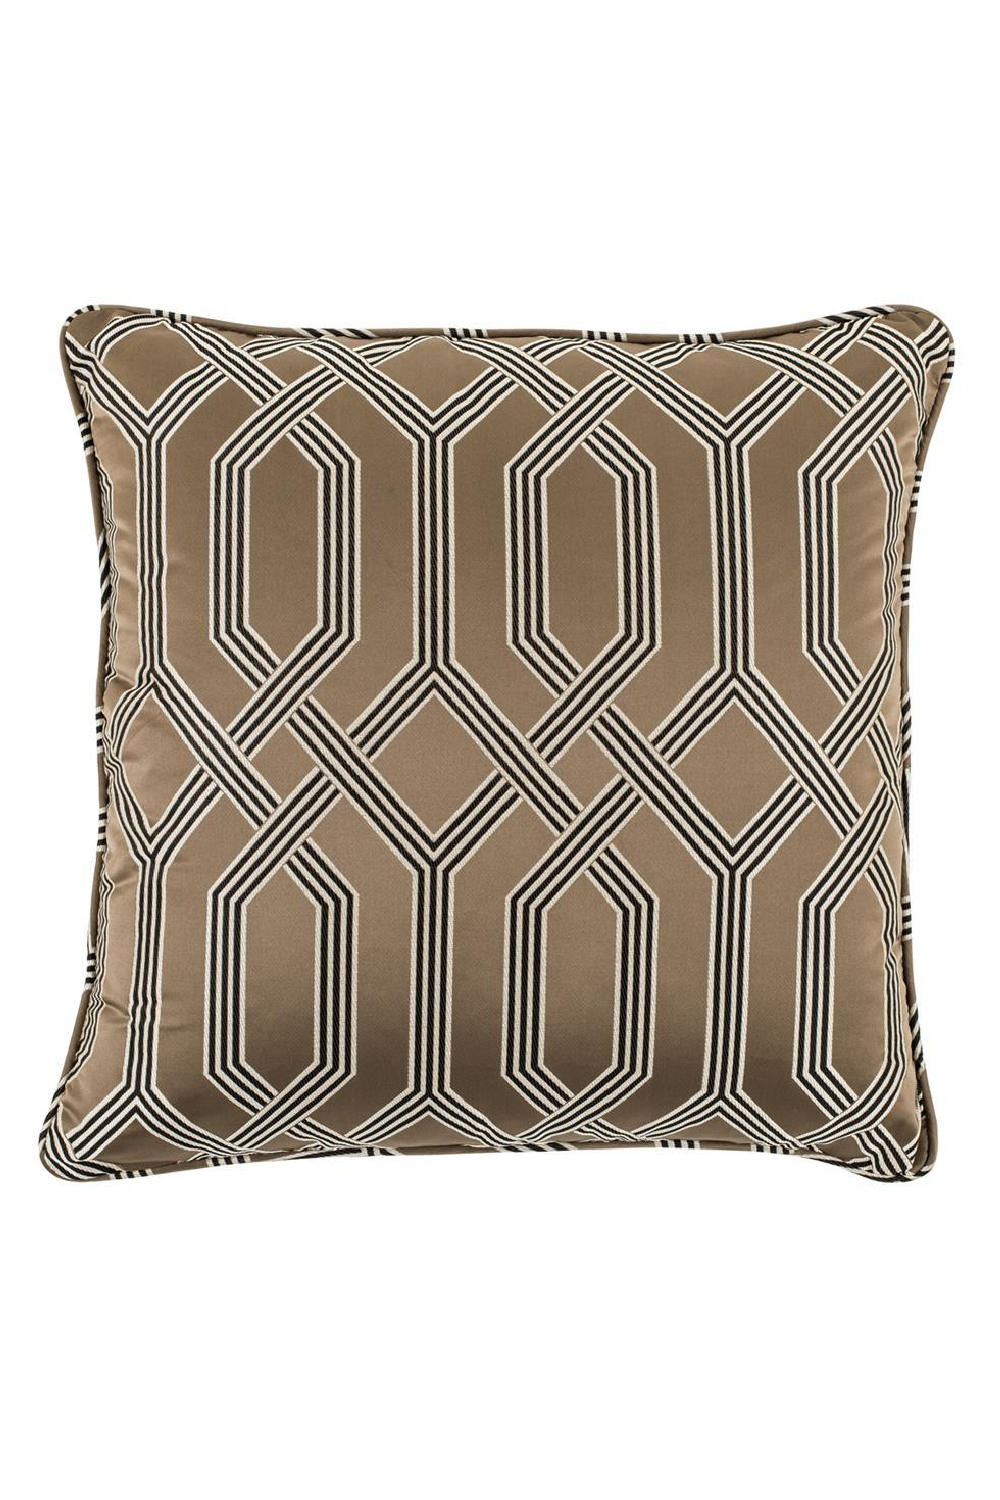 Square Brown Pillow 60cm | Eichholtz Fontaine | OROA